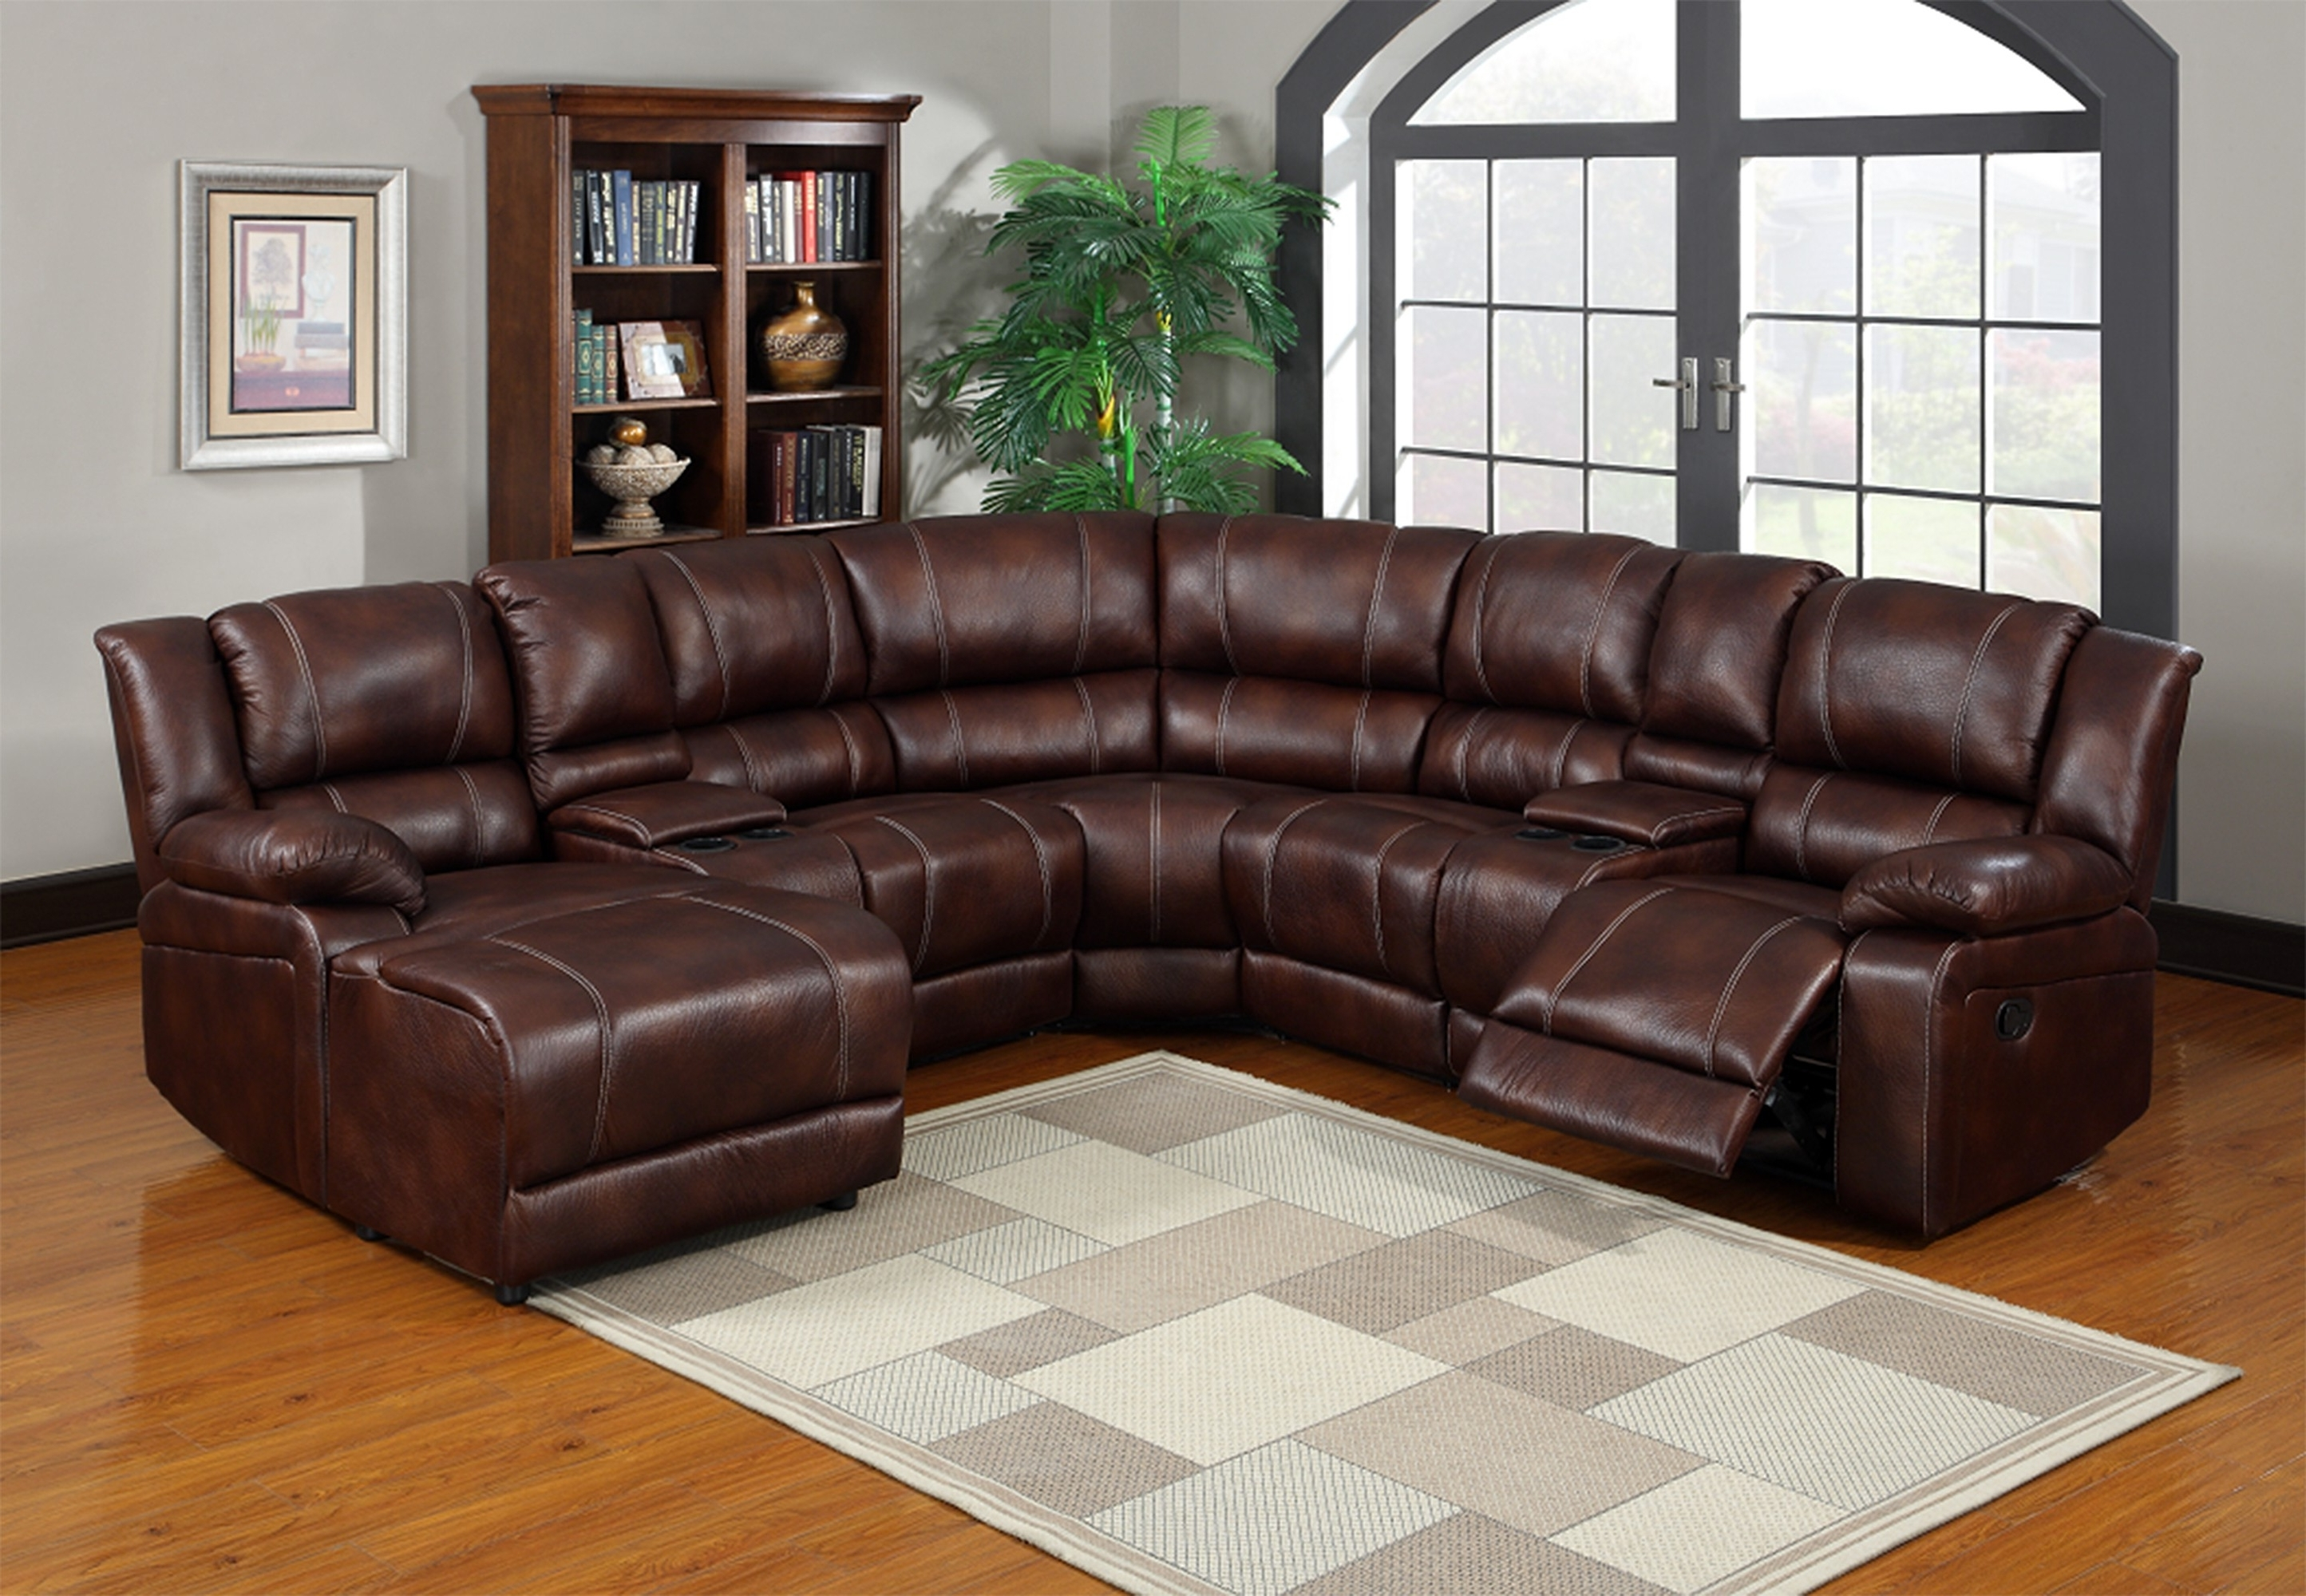 Latest Leather Motion Sectional Sofa – Home And Textiles Regarding Motion Sectional Sofas (View 4 of 20)